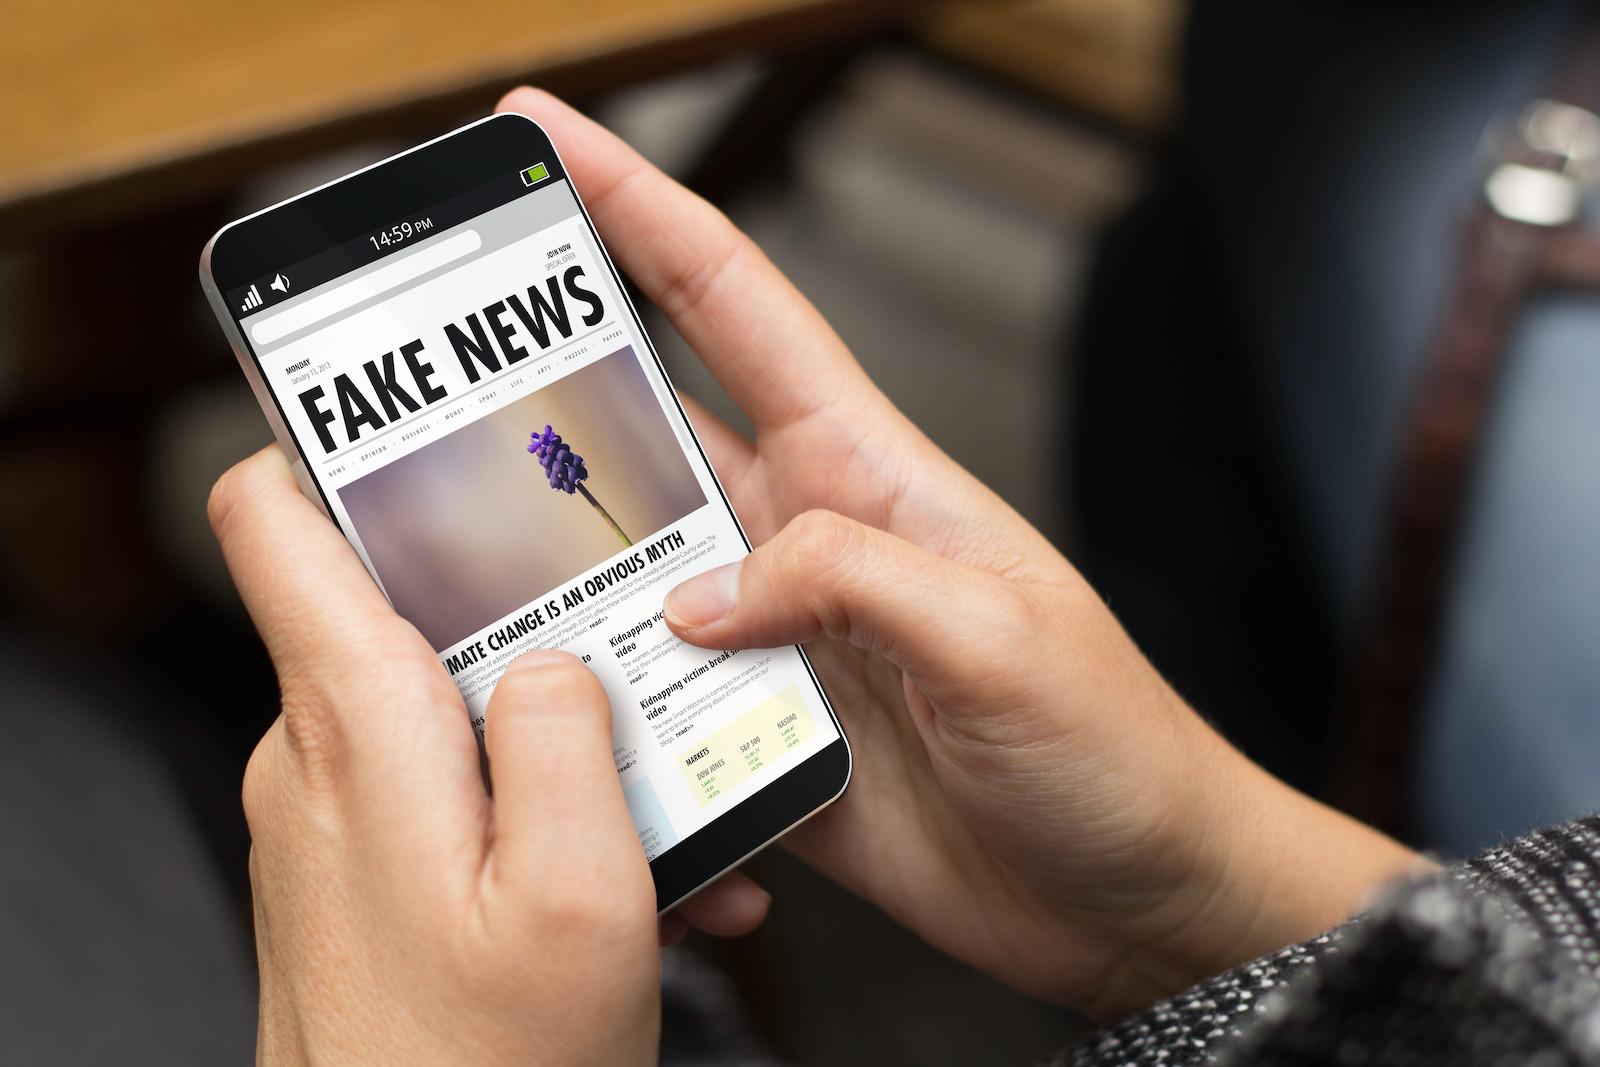 fake news online - summalinguae.com